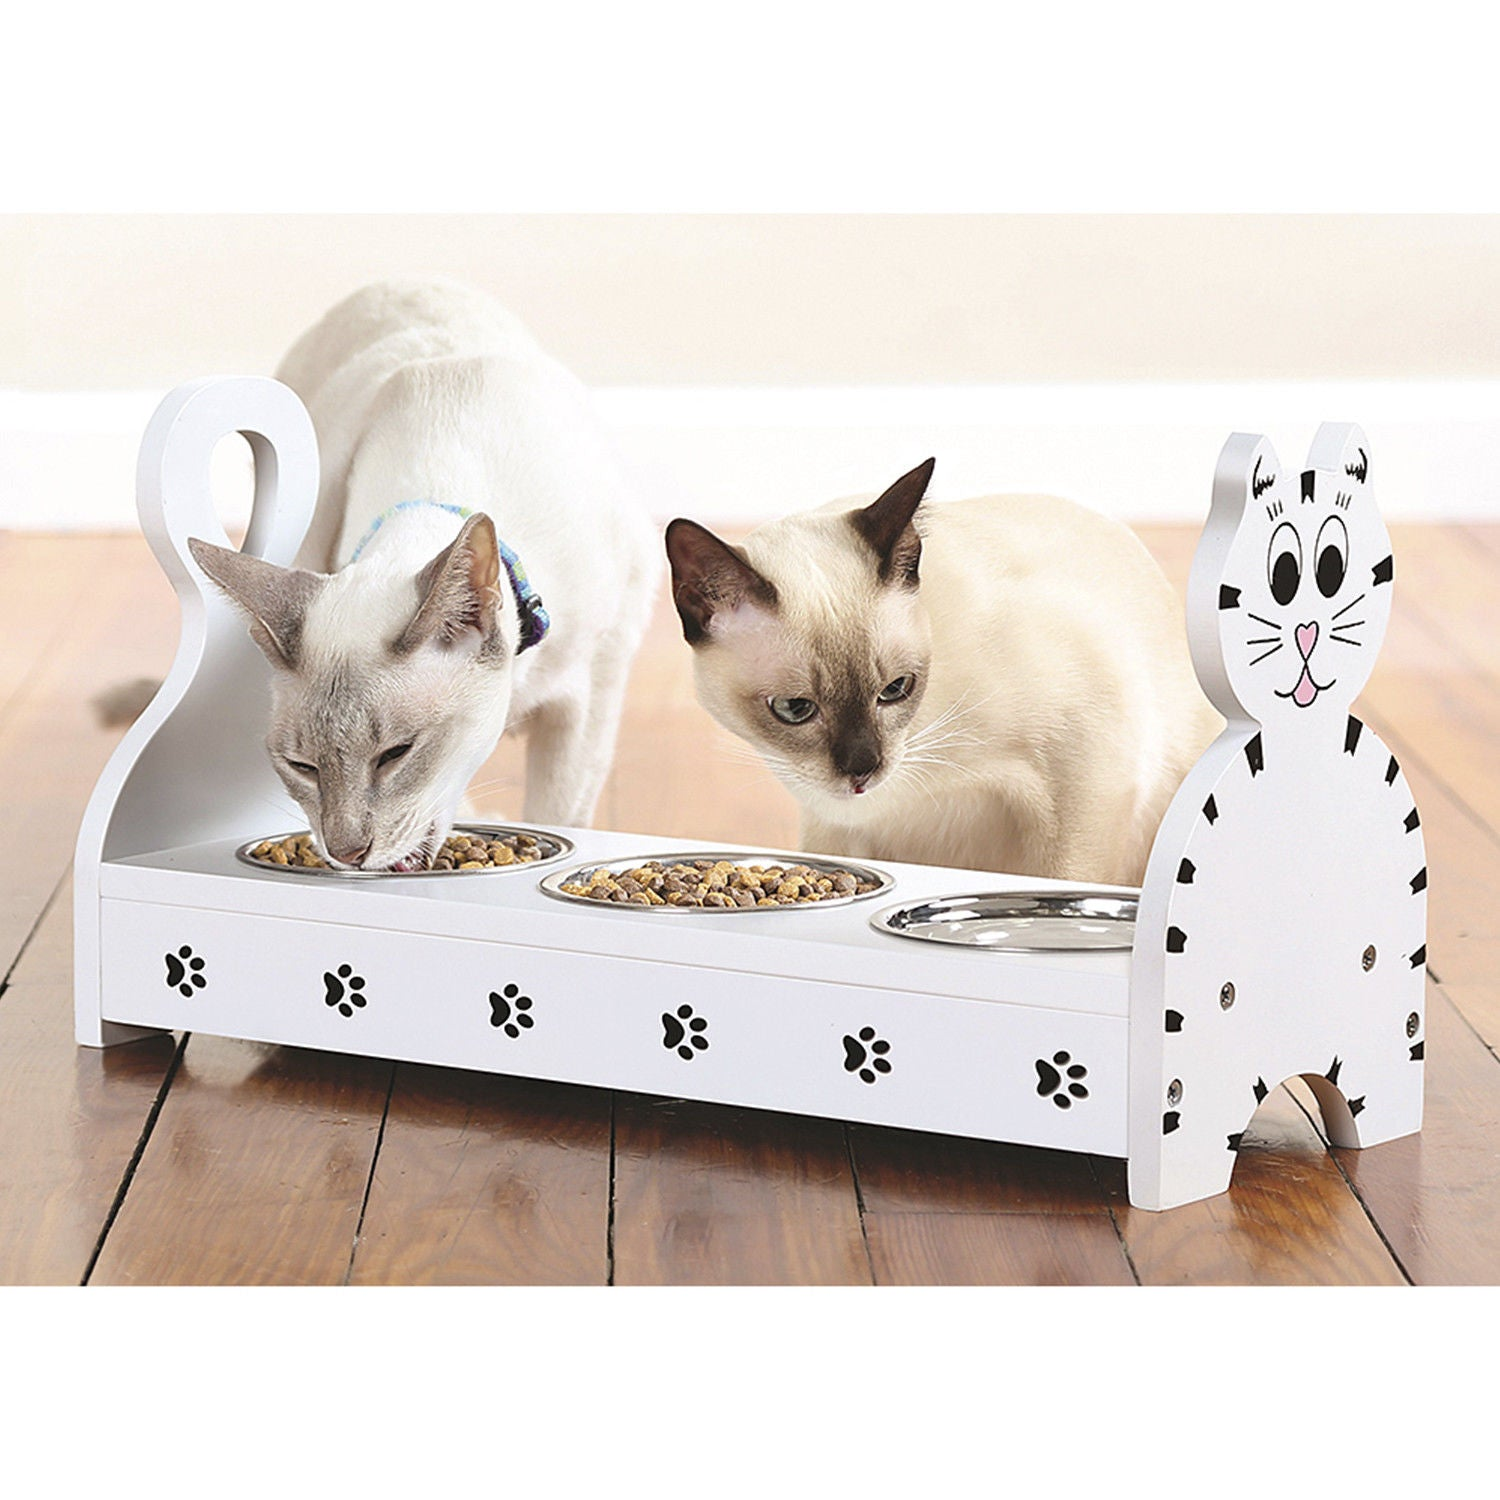 Wood Multiple Cats Pets Feeder Cat Feeding Station Cat Food Bowls Dishes W Stand